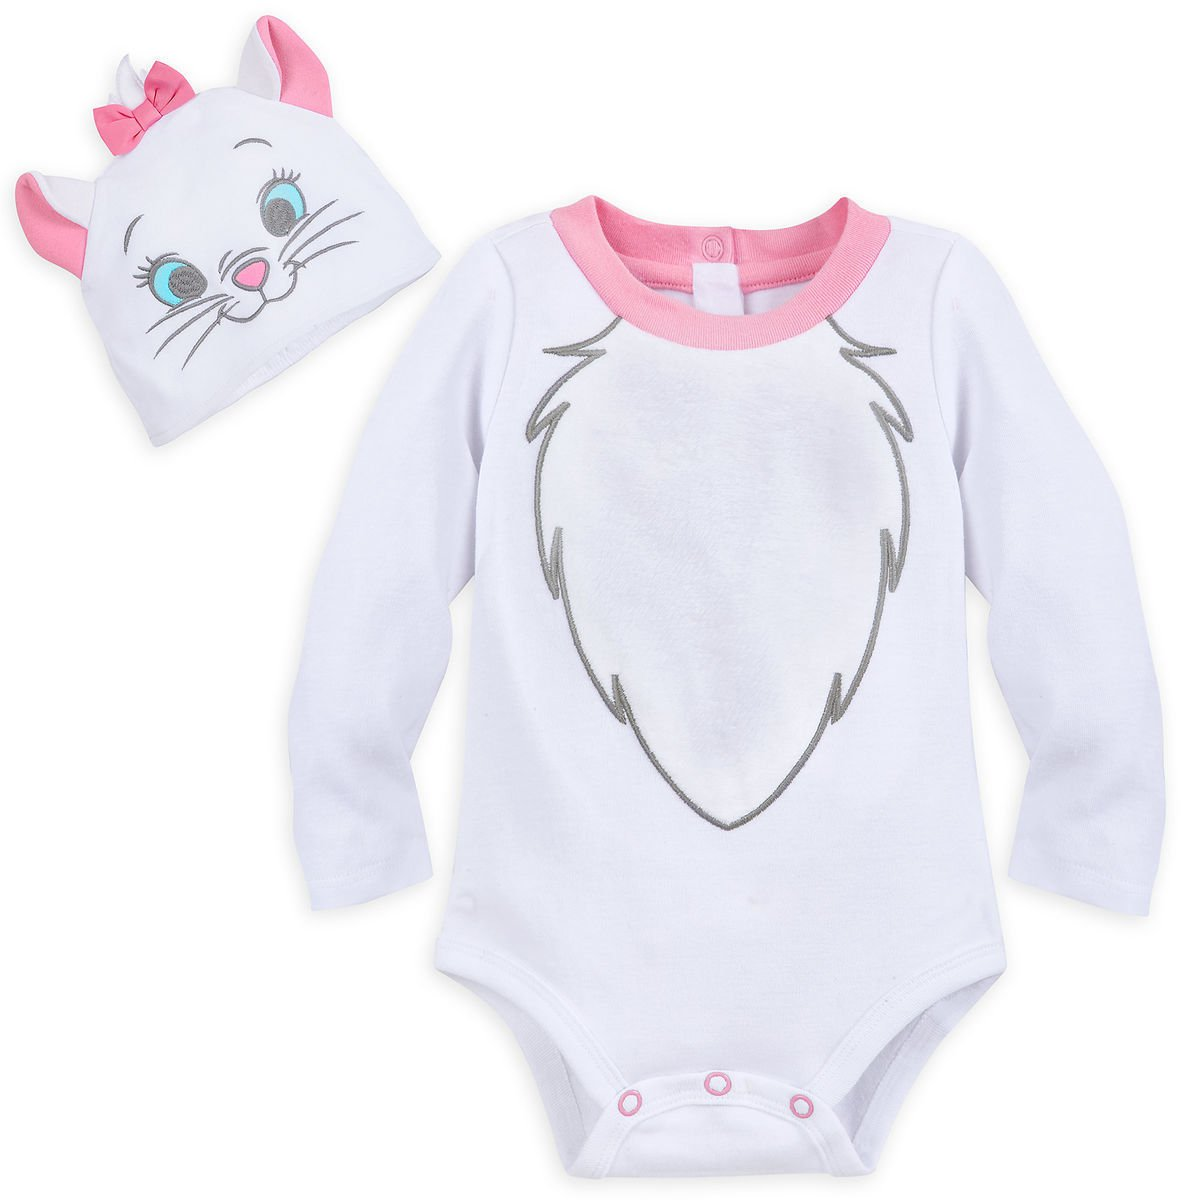 Disney Store Marie Baby Costume Bodysuit Hat 12-18 Months 2018 New